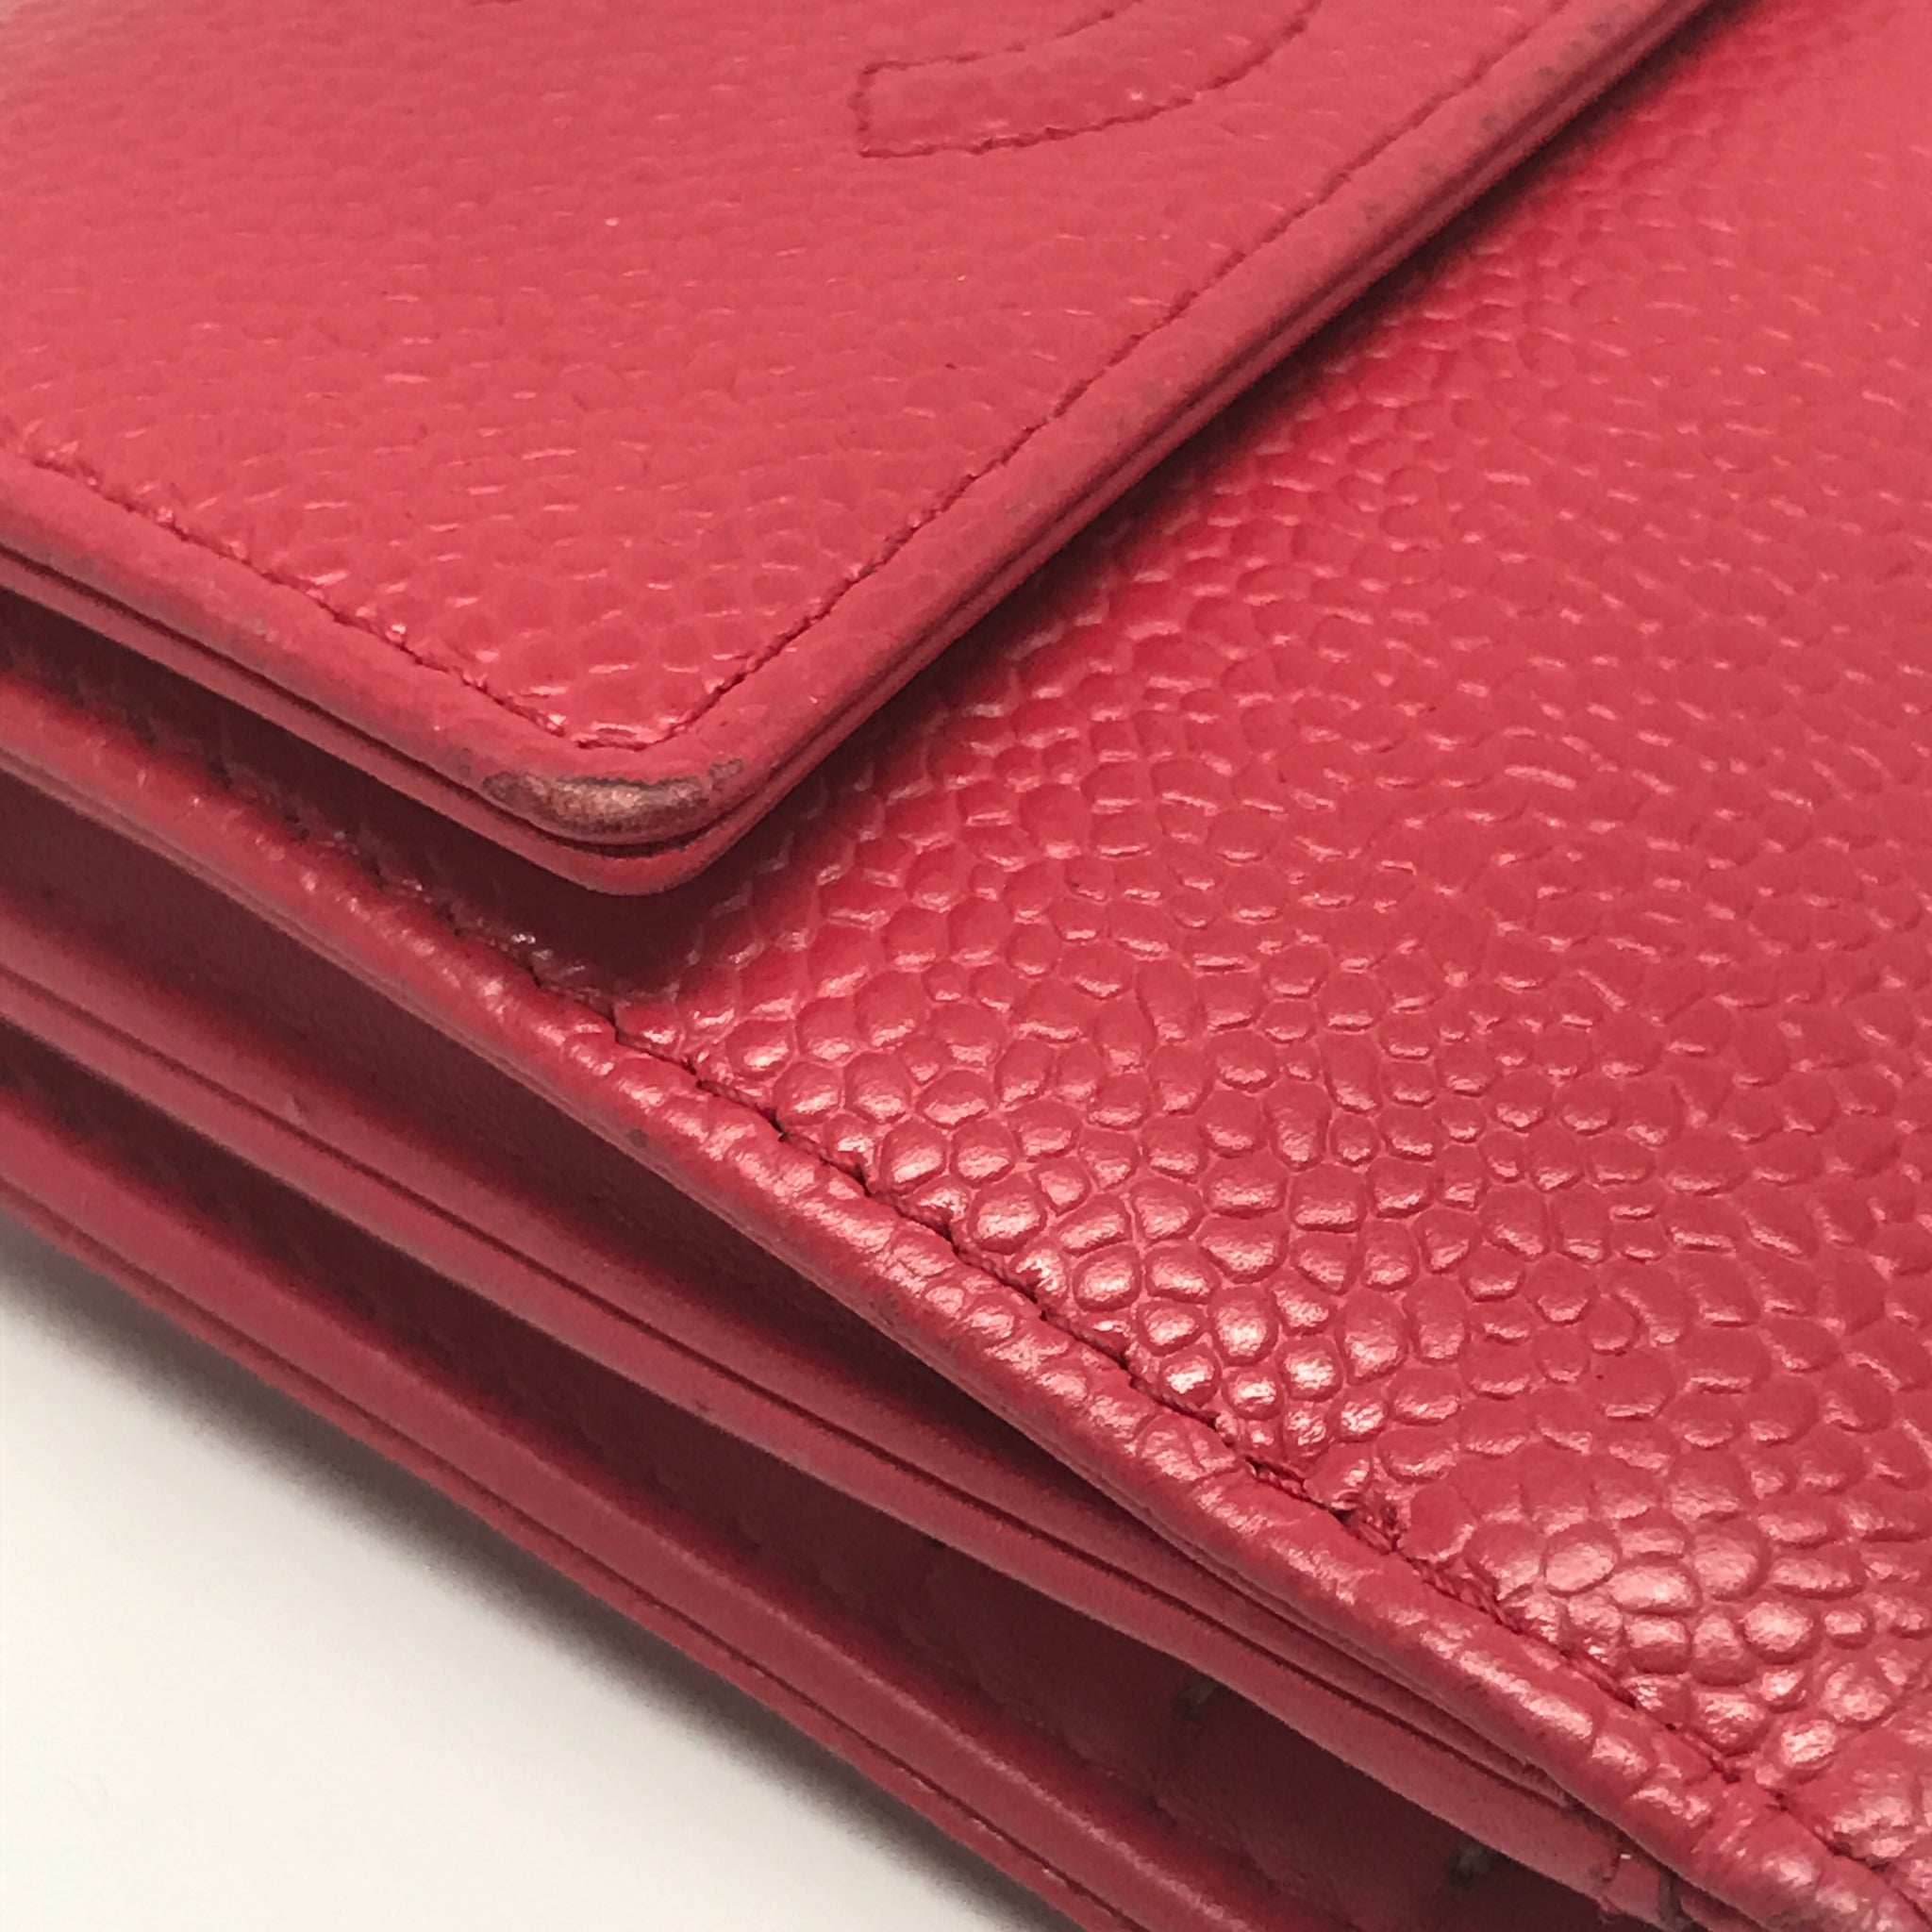 CHANEL RED CAVIAR BIFOLD COMPACT WALLET